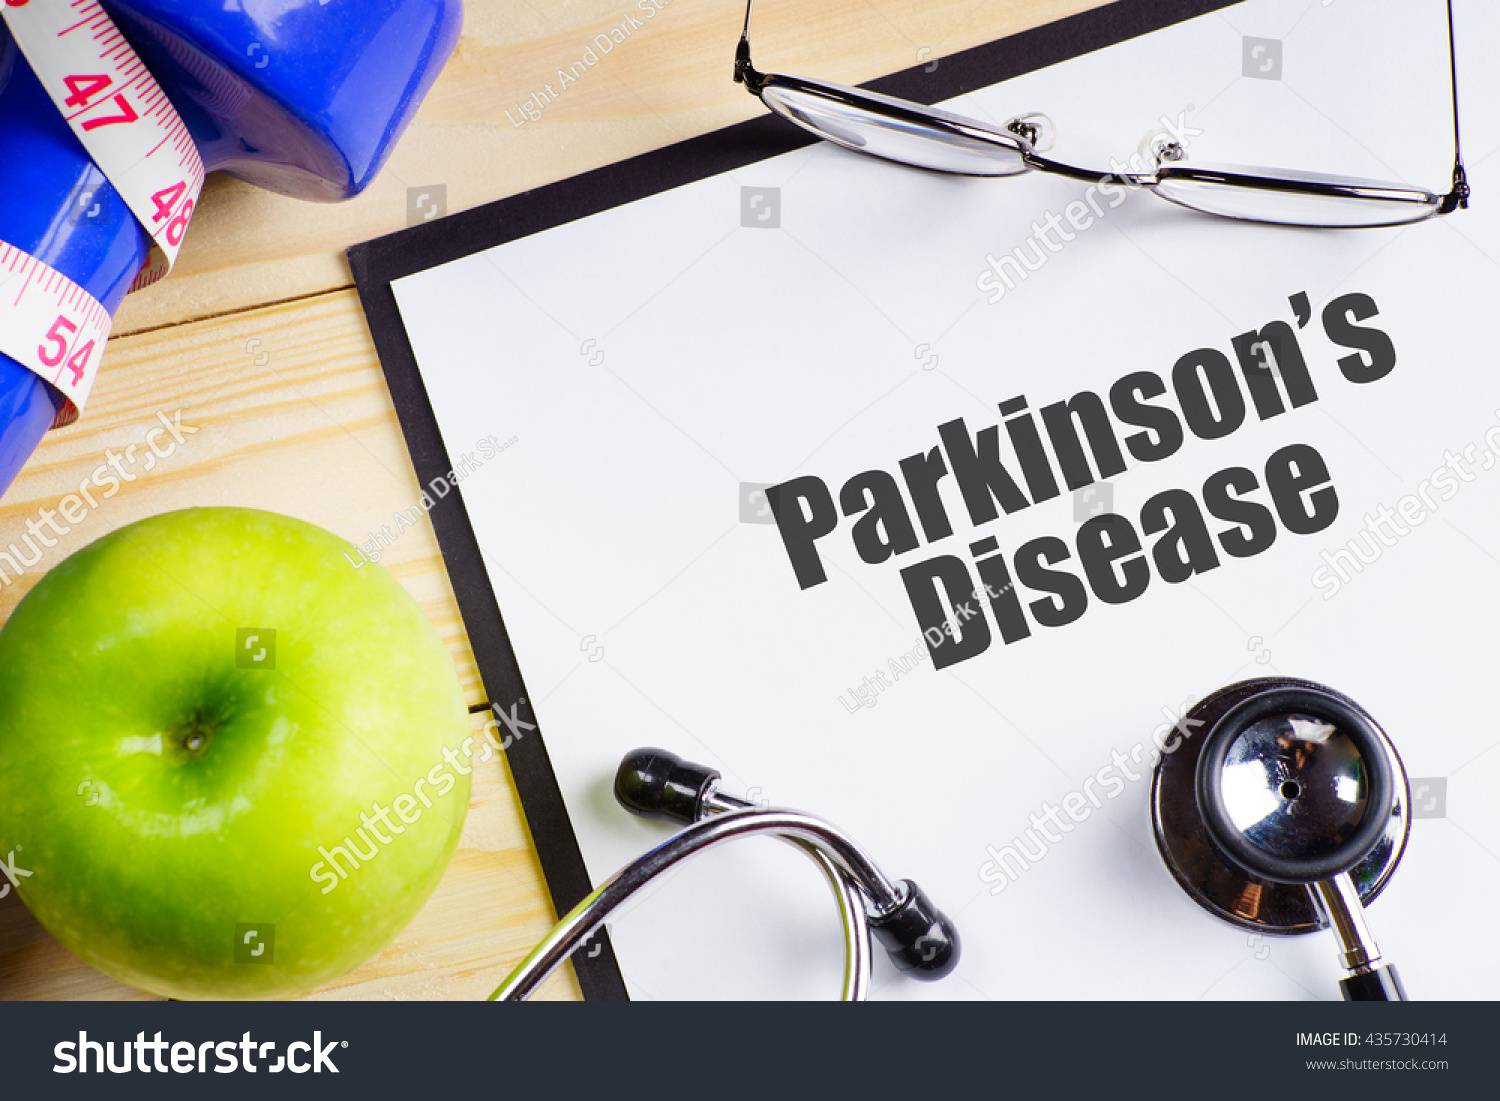 parkinsons disease essay Free essay: the national parkinson's foundation estimates that each pd patient pays $2500 a year on medicines alone when accounting for social security and.